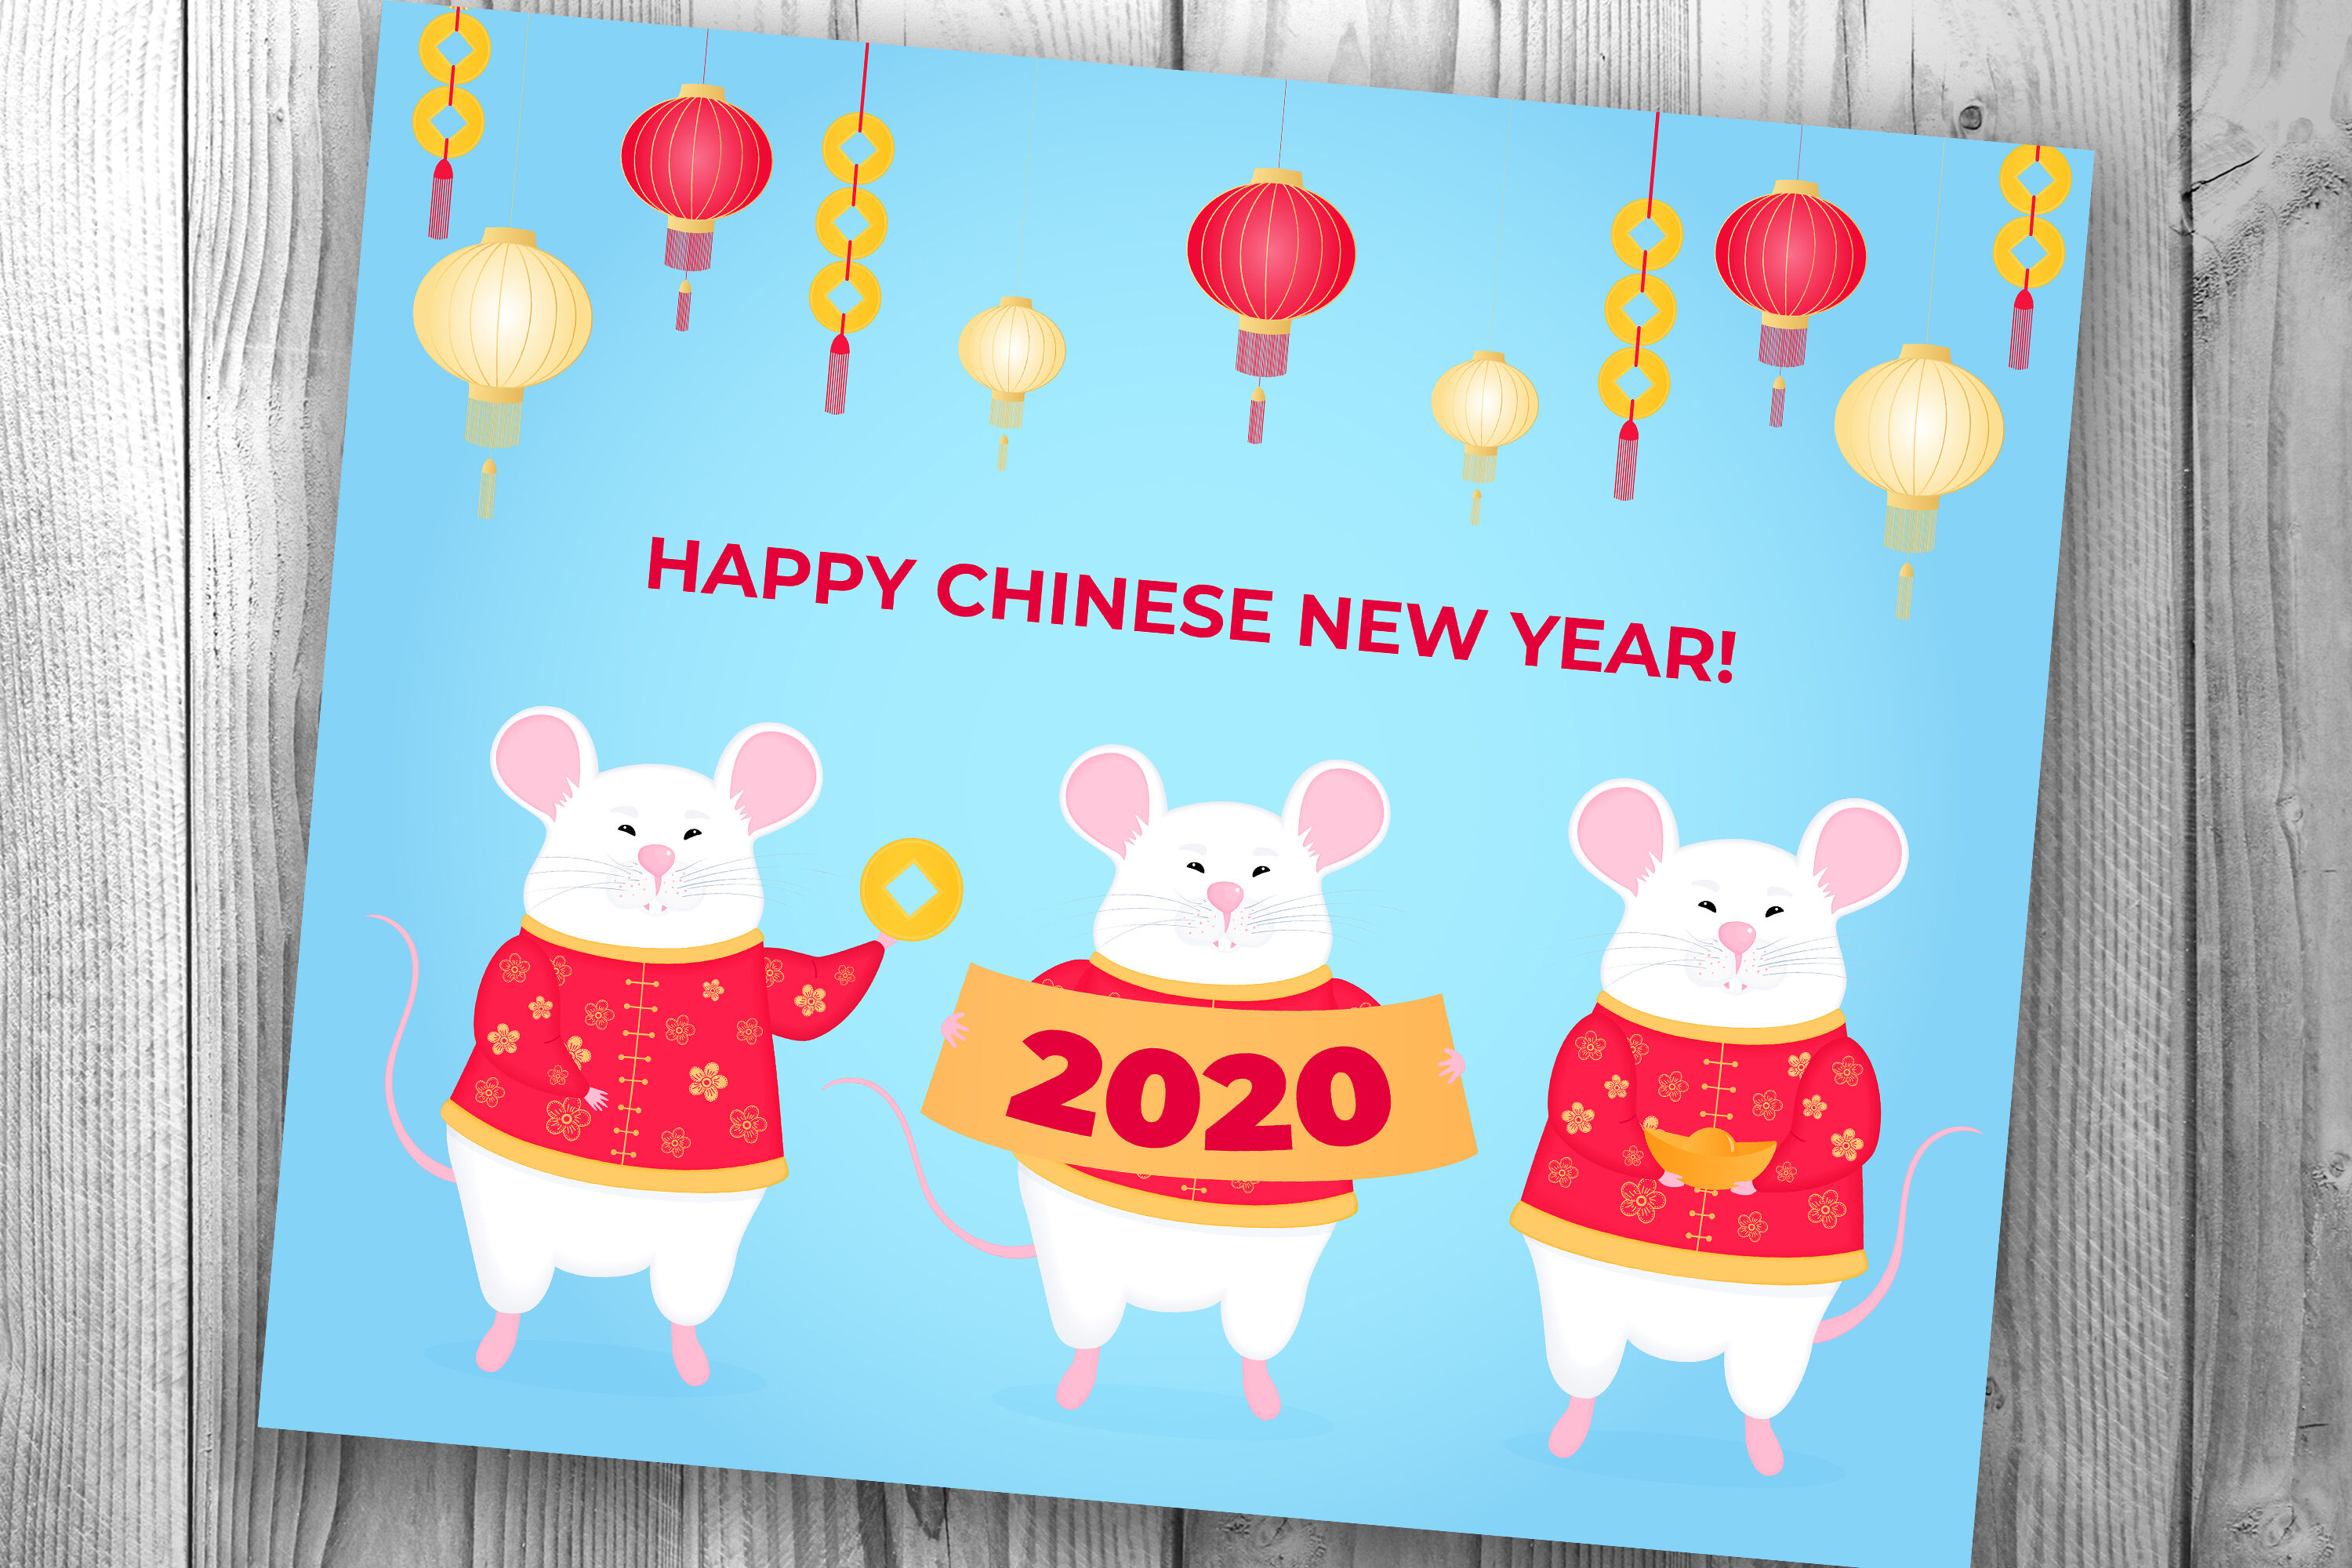 Chinese New Year White Rats Greeting Cards And Calendar By